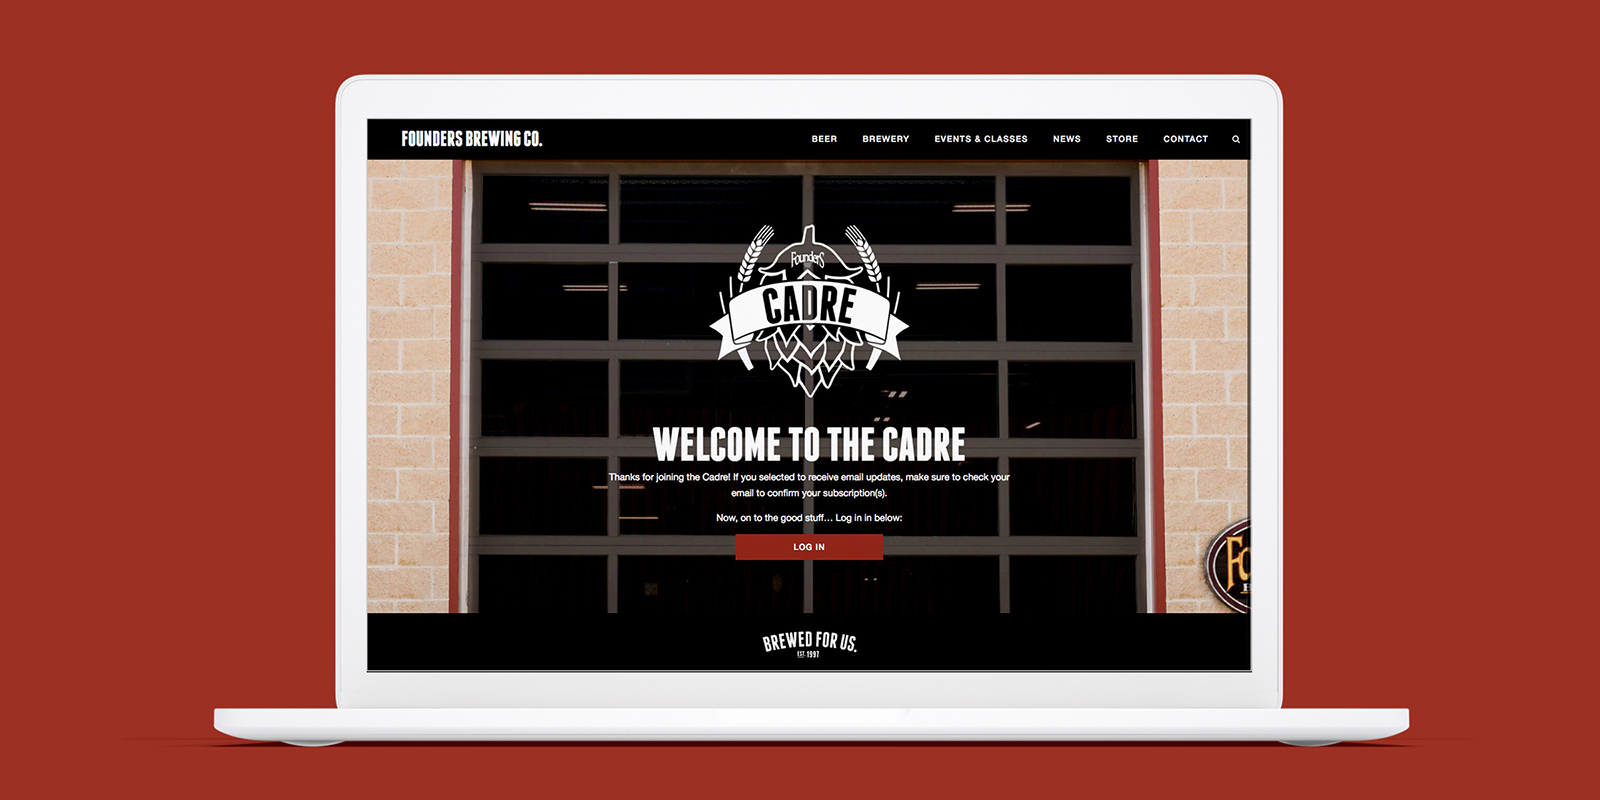 Cadre Log in Screen for Founders brewing Co. By Blue Flame Thinking